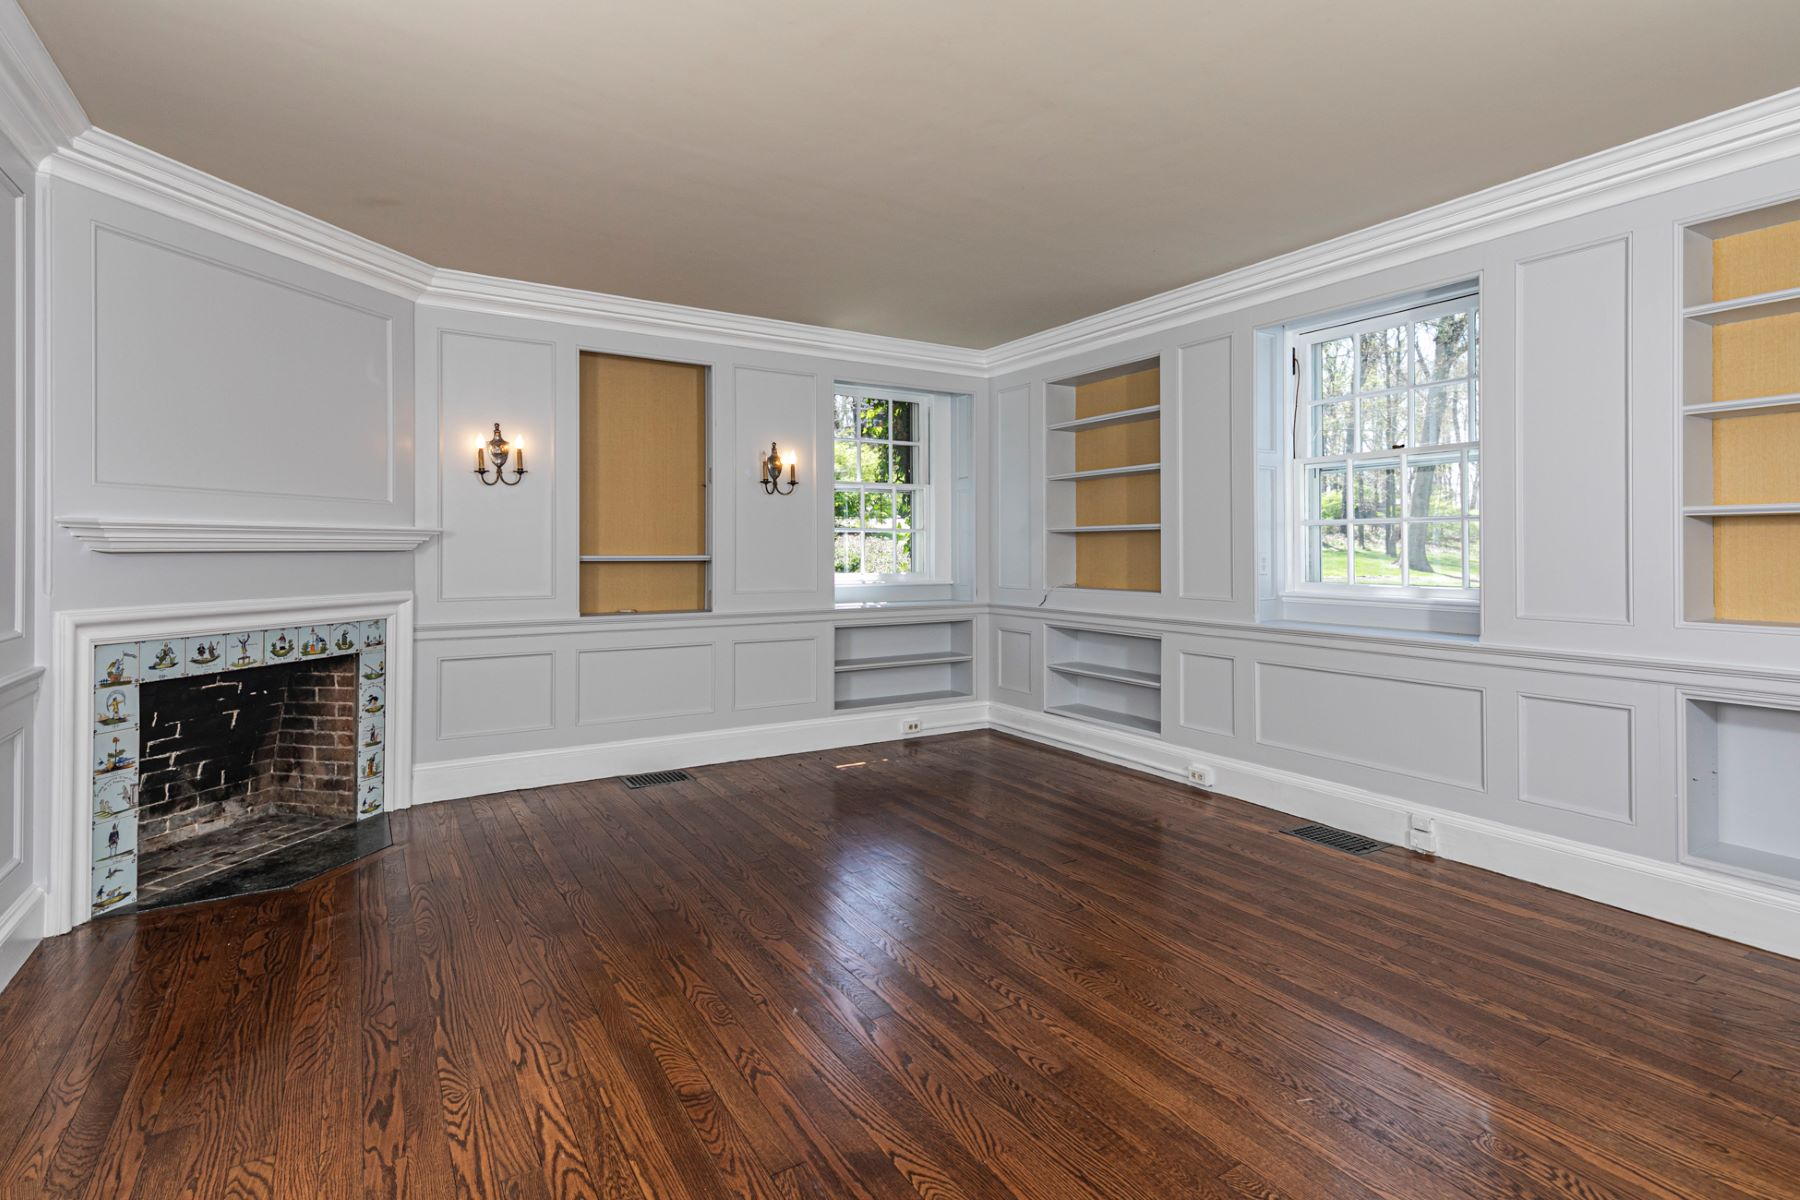 Additional photo for property listing at From the Train to Tranquility in Under 6 Miles 75 North Road, Princeton, New Jersey 08540 United States